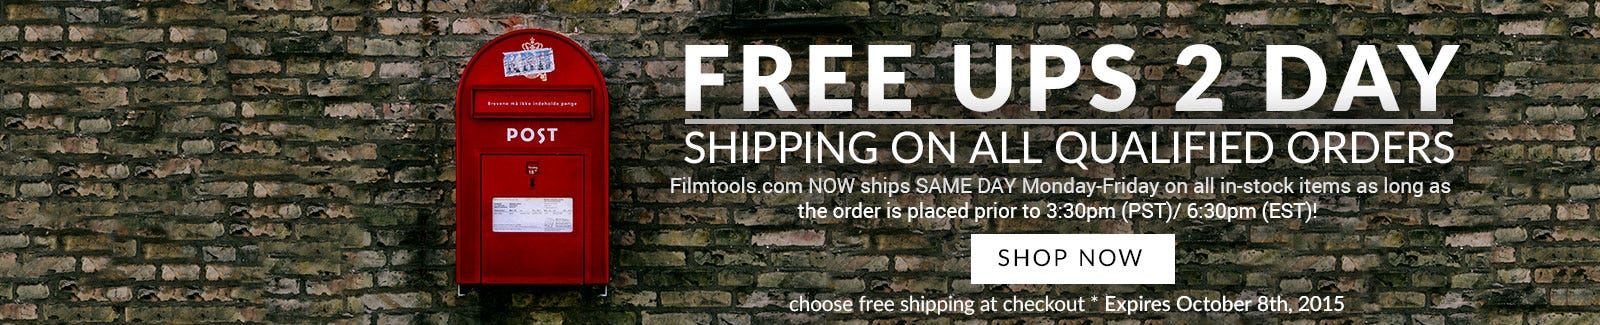 Free 2 Day Shipping